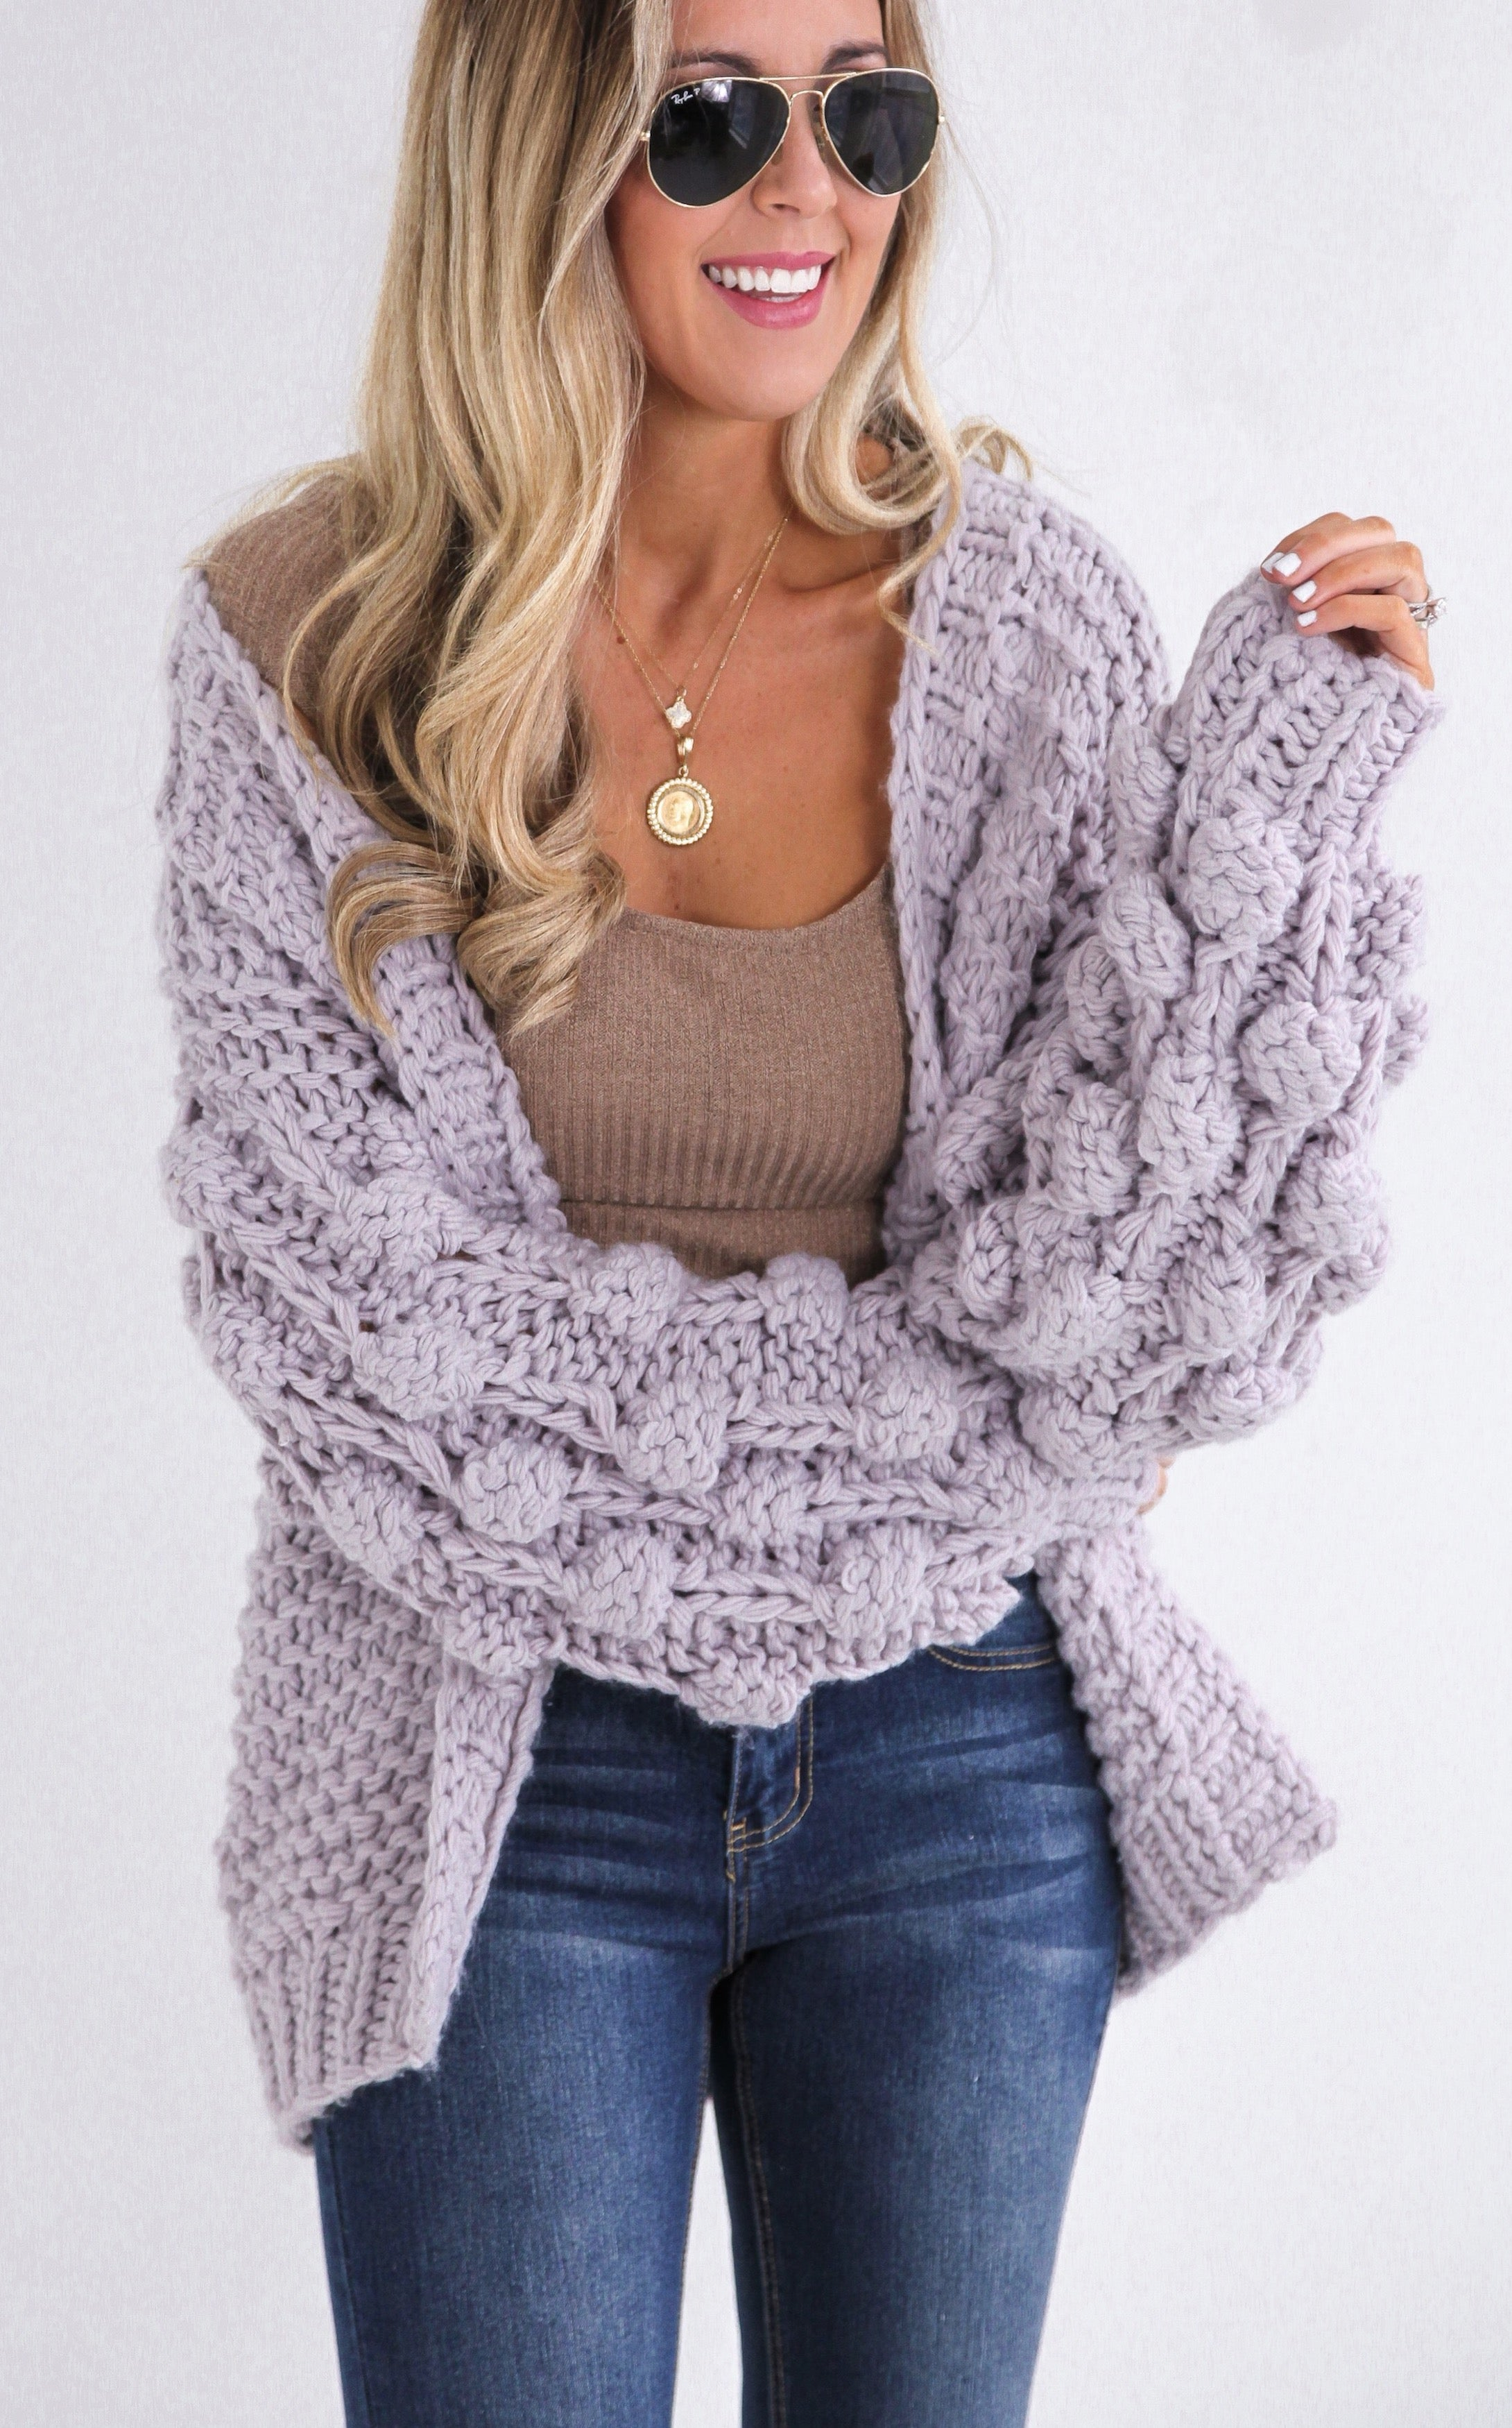 HAND KNIT SWEATER - LILAC